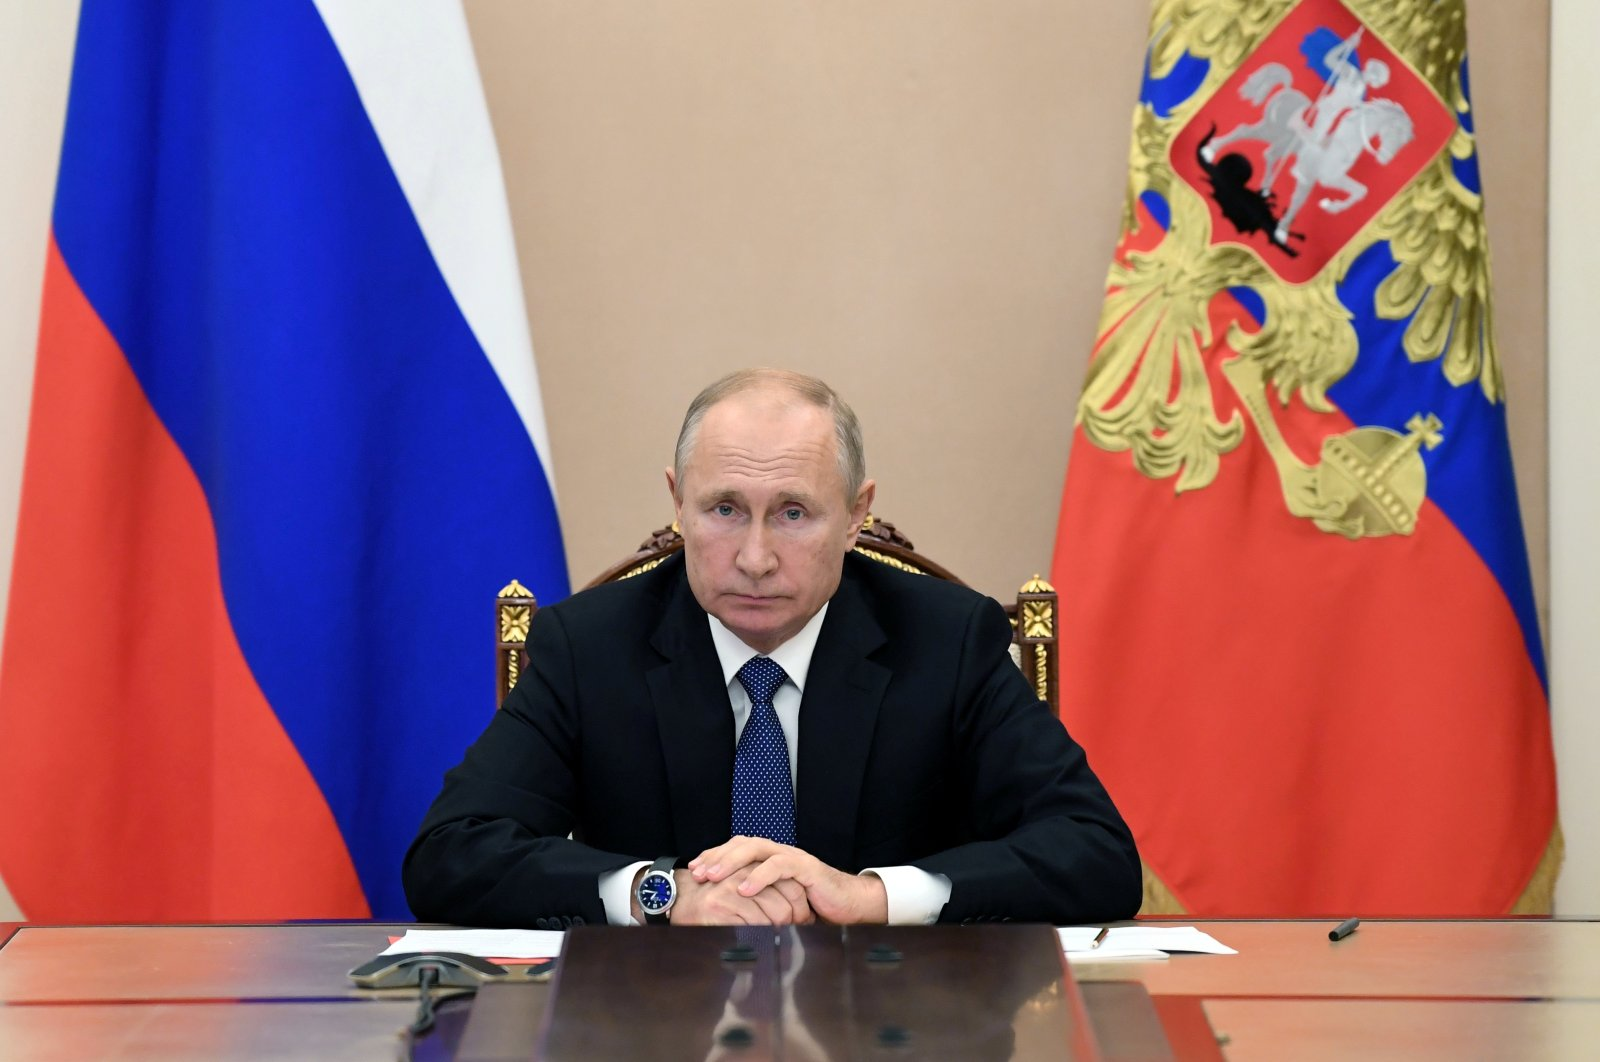 Russian President Vladimir Putin takes part in a video conference call with members of the Security Council in Moscow, Russia, Nov. 6, 2020. (Reuters Photo)